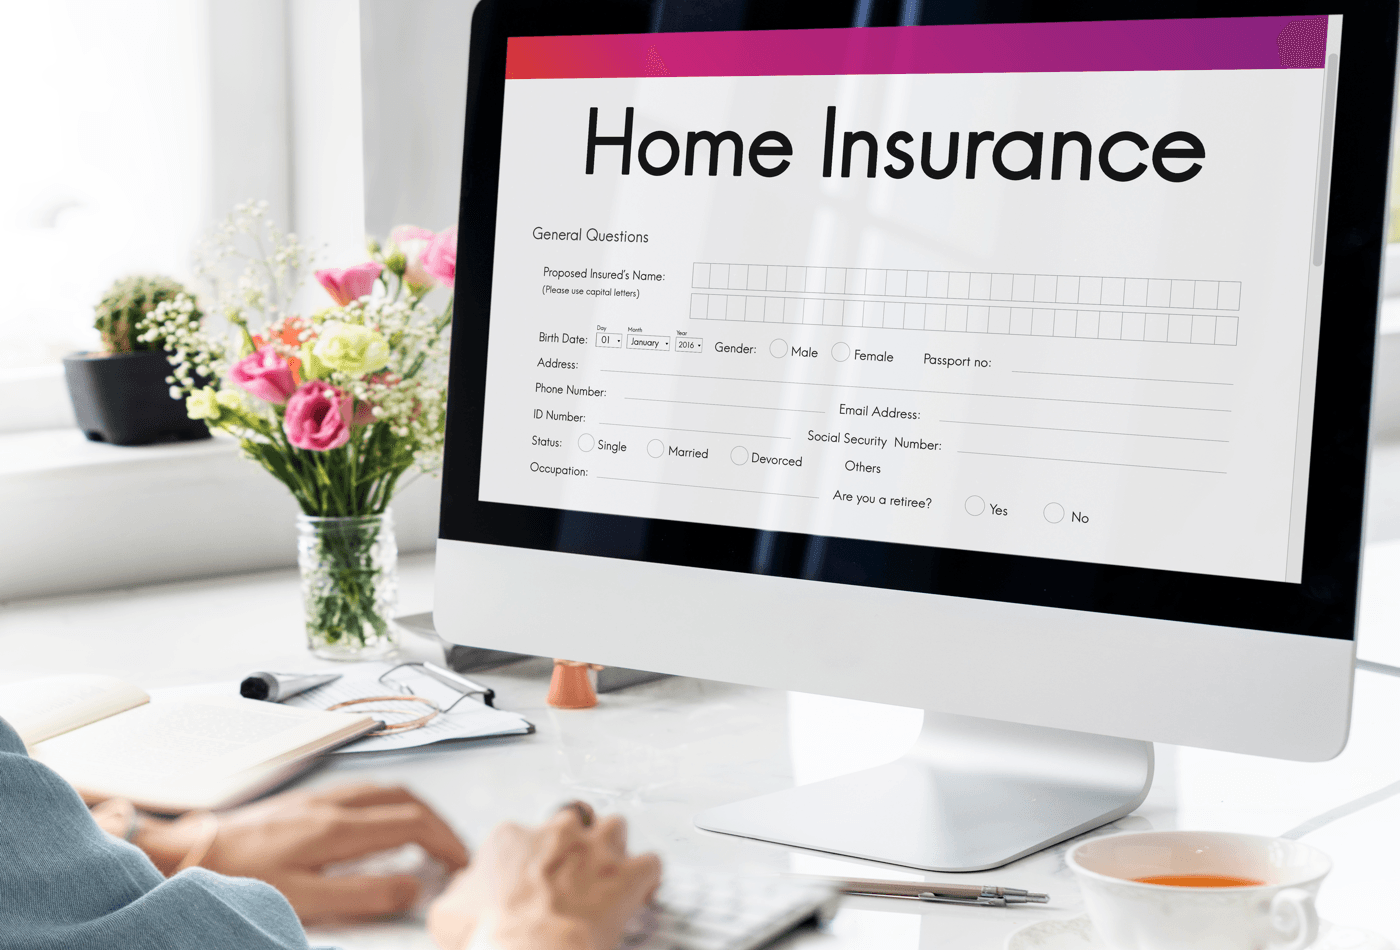 7 Details About Home Insurance You Should Know Form Image